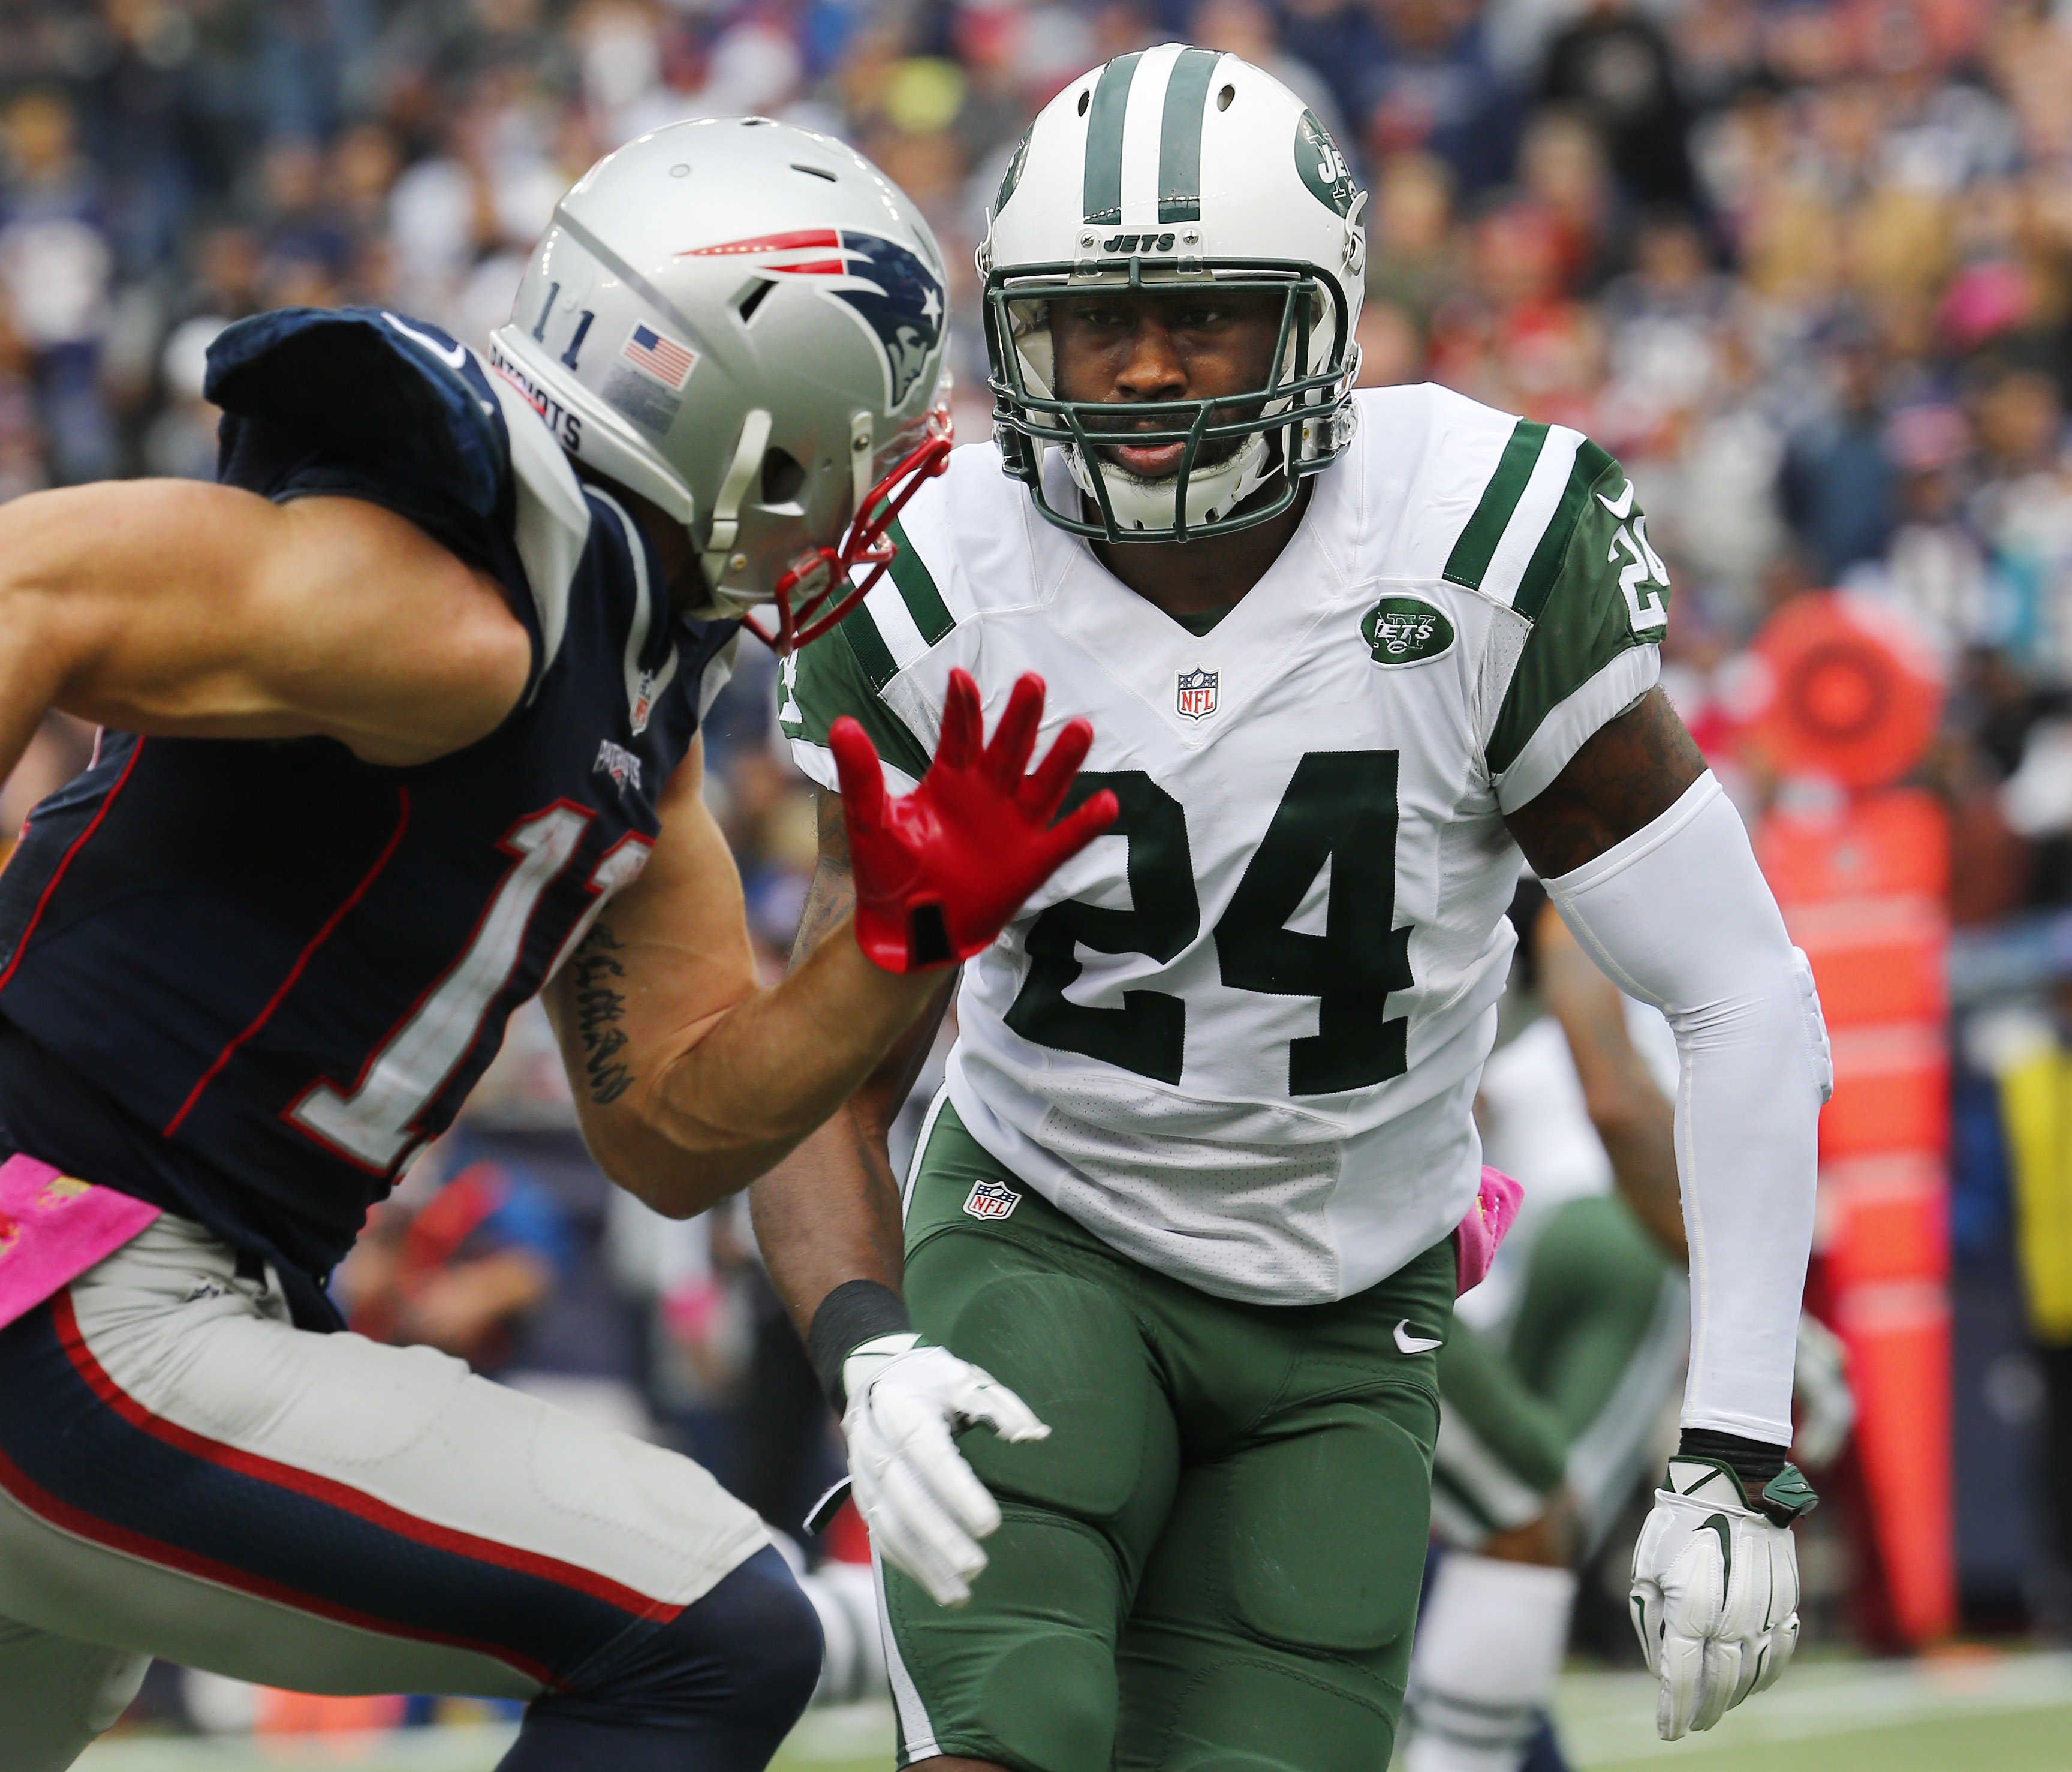 FILE - In this Oct. 25, 2015, file photo, New York Jets cornerback Darrelle Revis (24) covers New England Patriots wide receiver Julian Edelman during an NFL football game in Foxborough, Mass. The Jets are expected to get a better idea of cornerback Darre